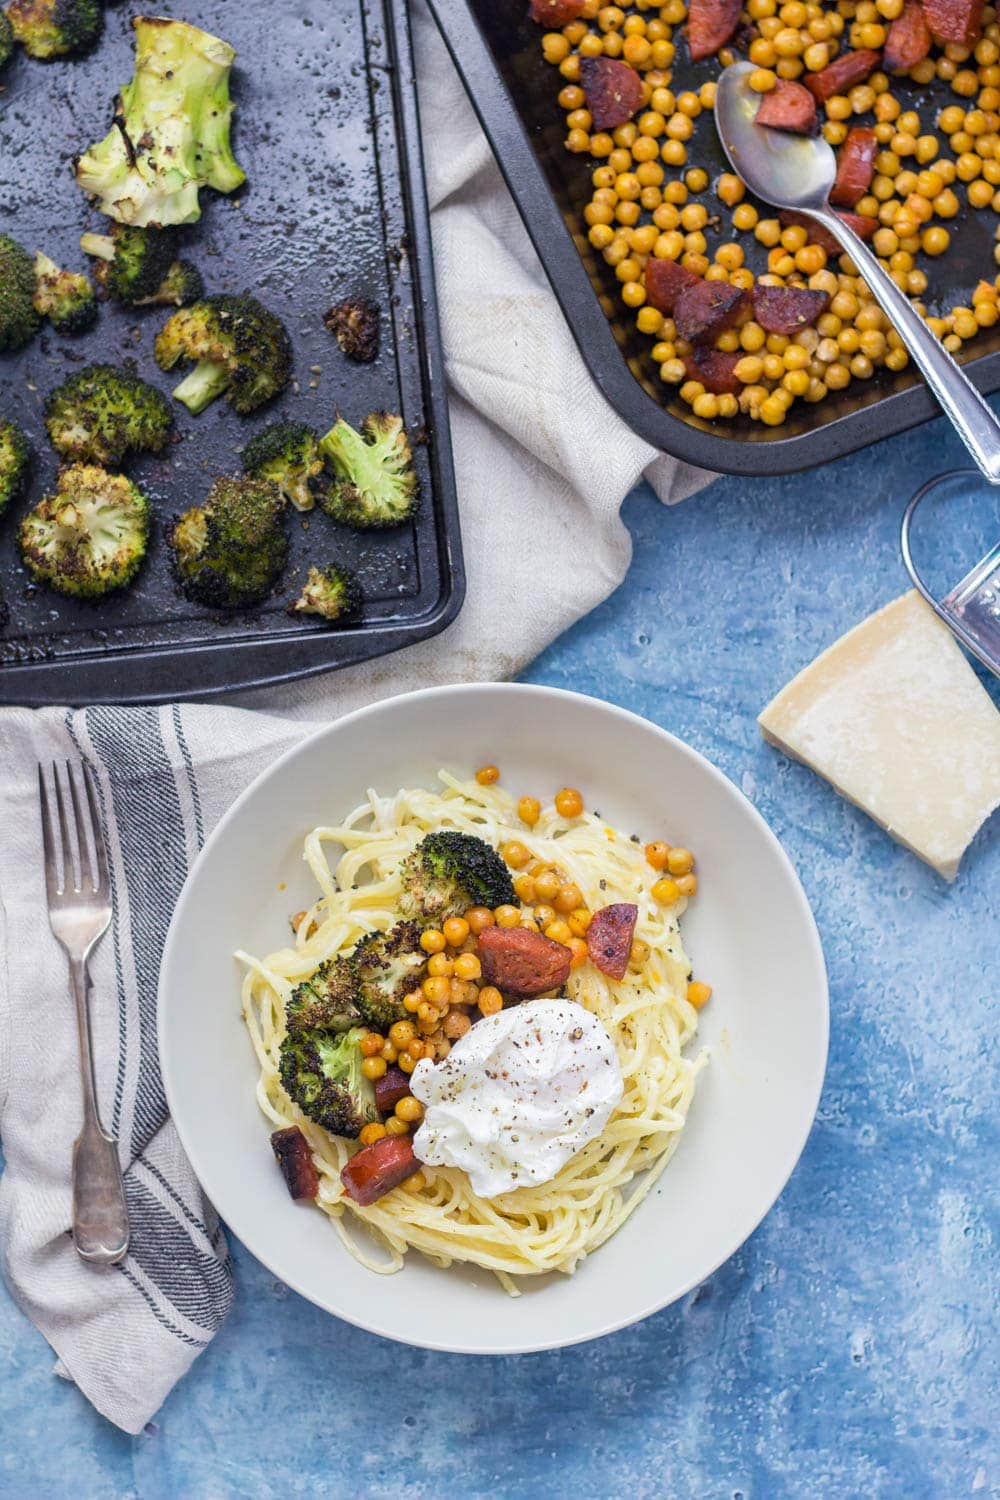 This garlic pasta is a simple weeknight meal packed with garlicky flavour and topped with delicious roasted broccoli, crispy chickpeas and chorizo. Finished with a poached egg.